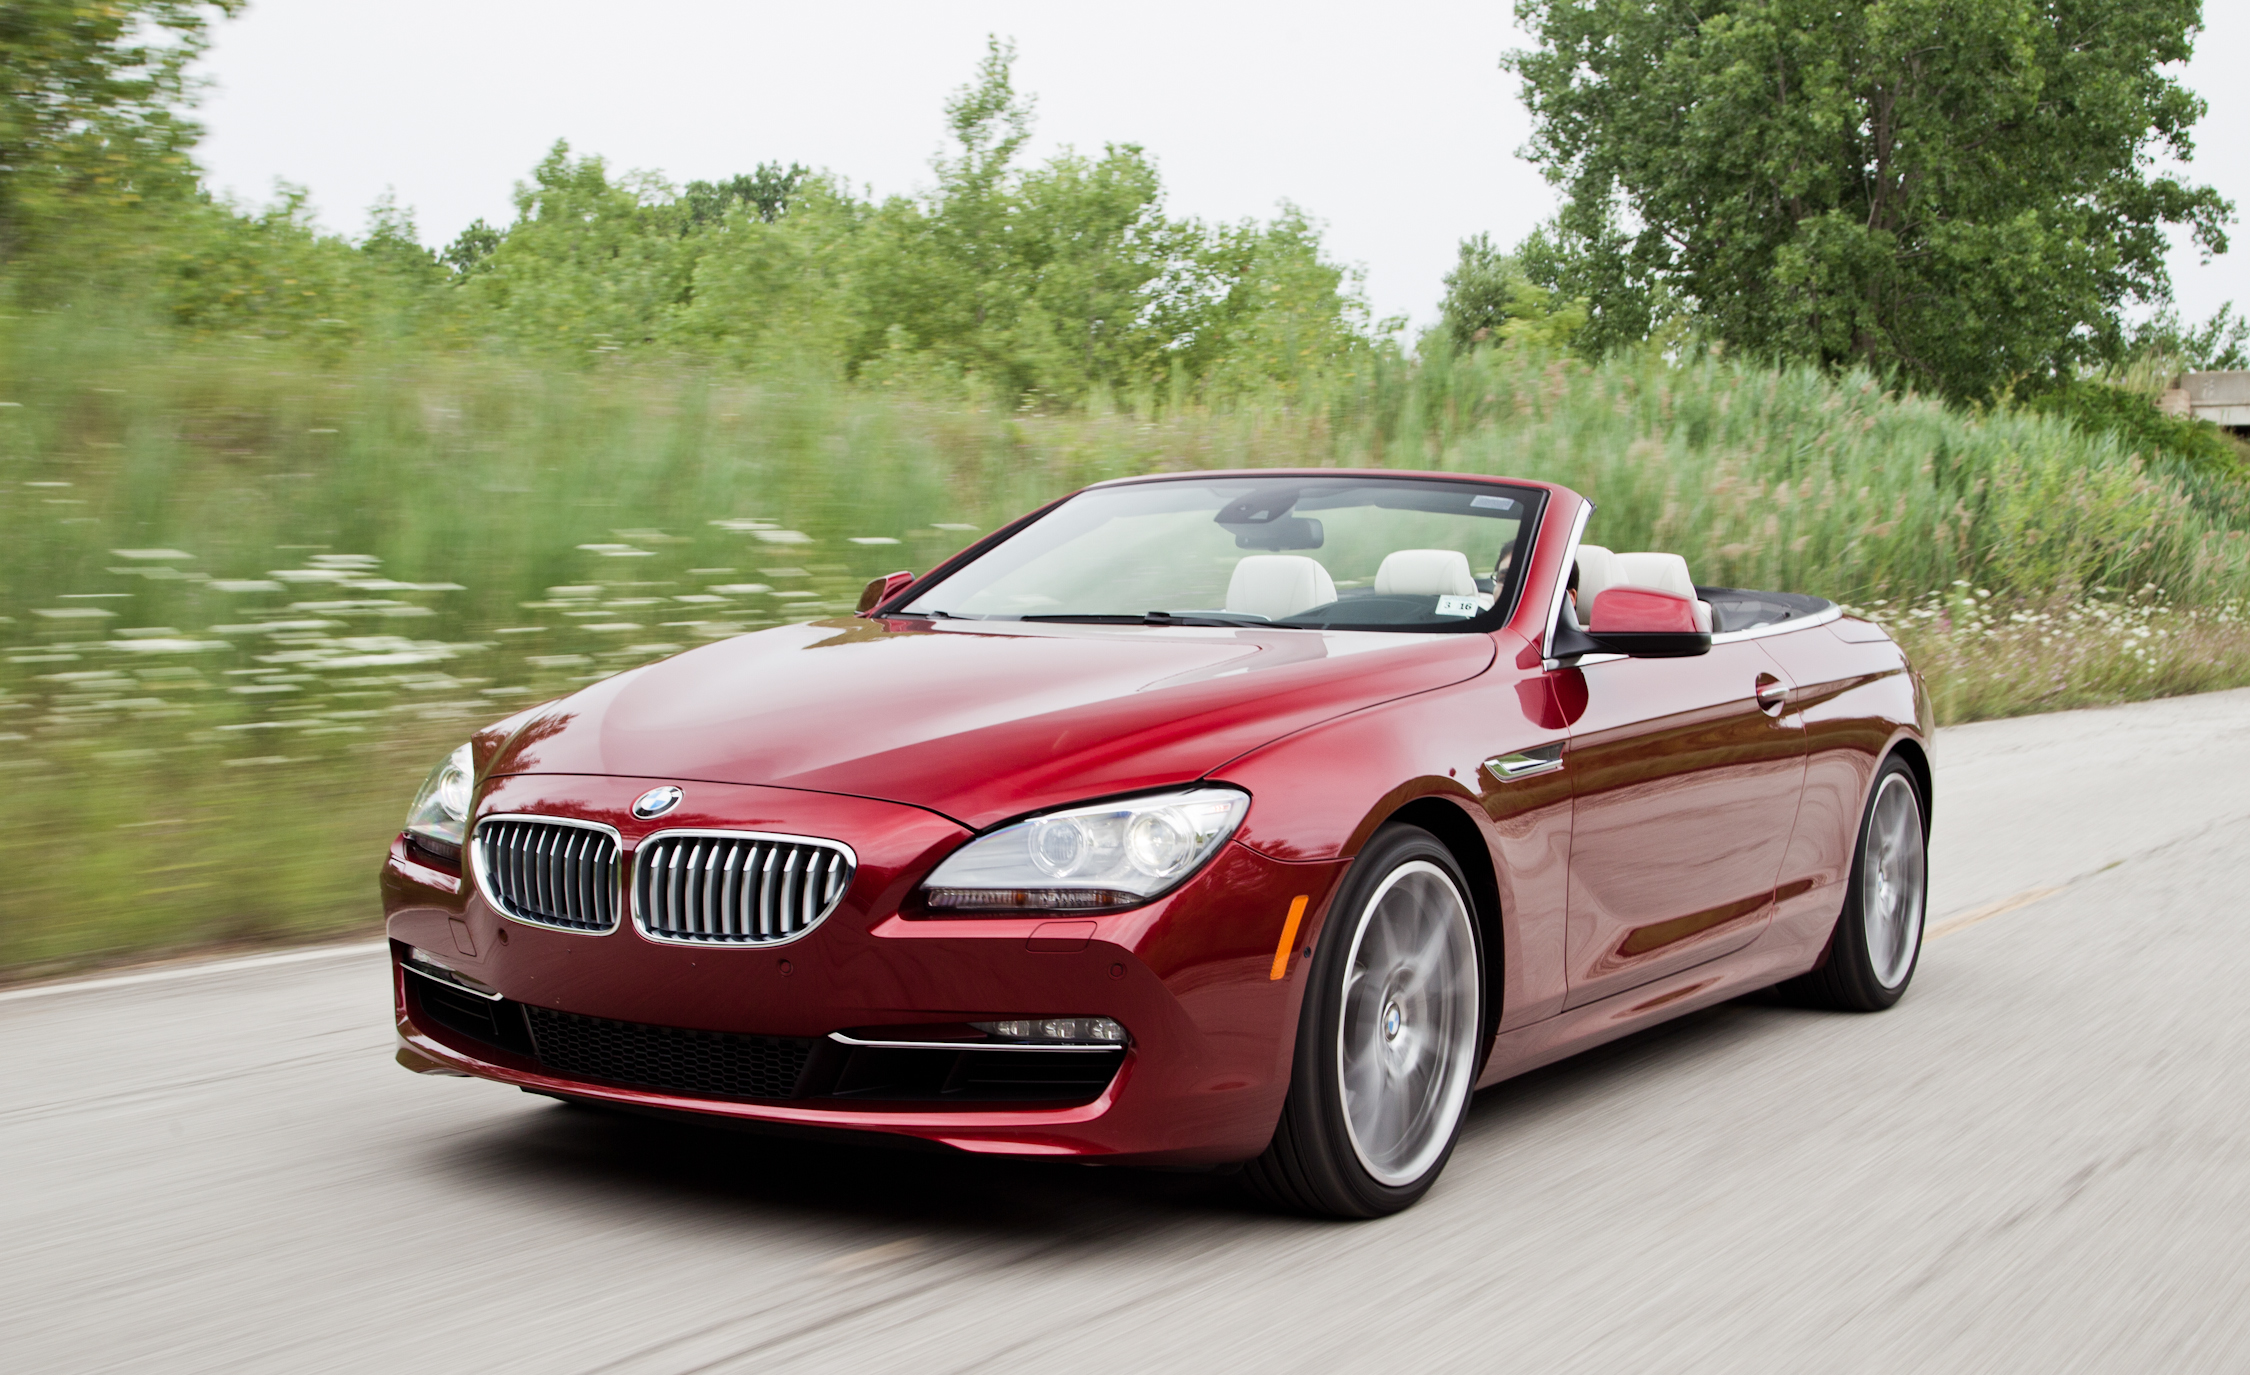 2012 BMW 650i Convertible Red Metallic (Photo 15 of 19)